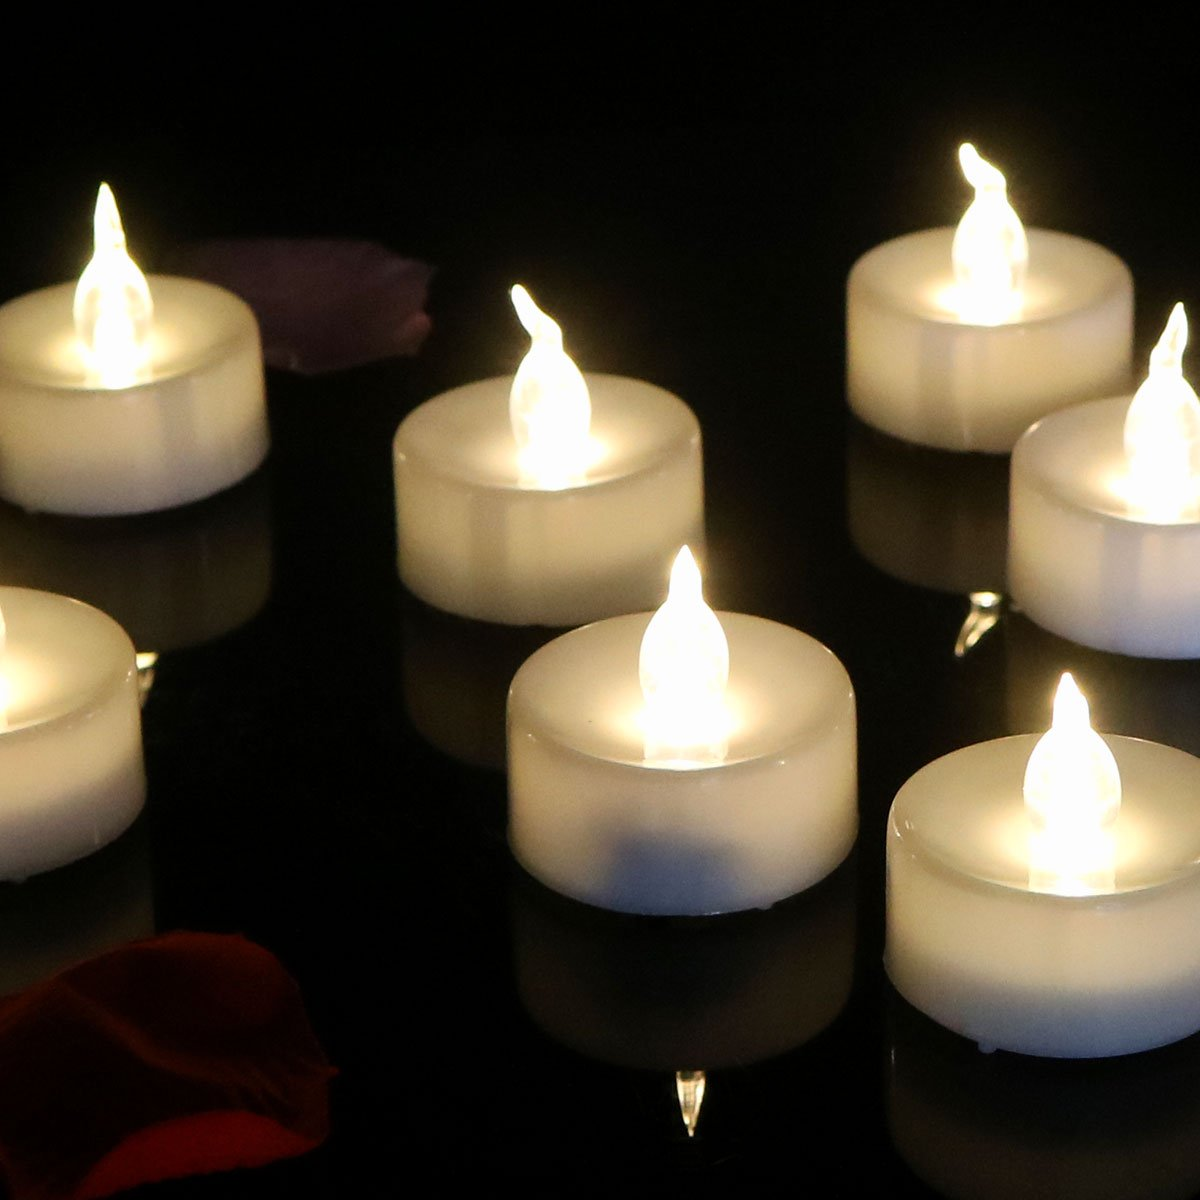 Micandle 12pcs Warm White Flameless Candles, No Flicker Battery Operated Candles,led Candles, Flameless Candle Set, Votive Candles, Mom Gifts for Christmas, Centerpieces, Wedding D¨¦cor Wedding D¨¦cor